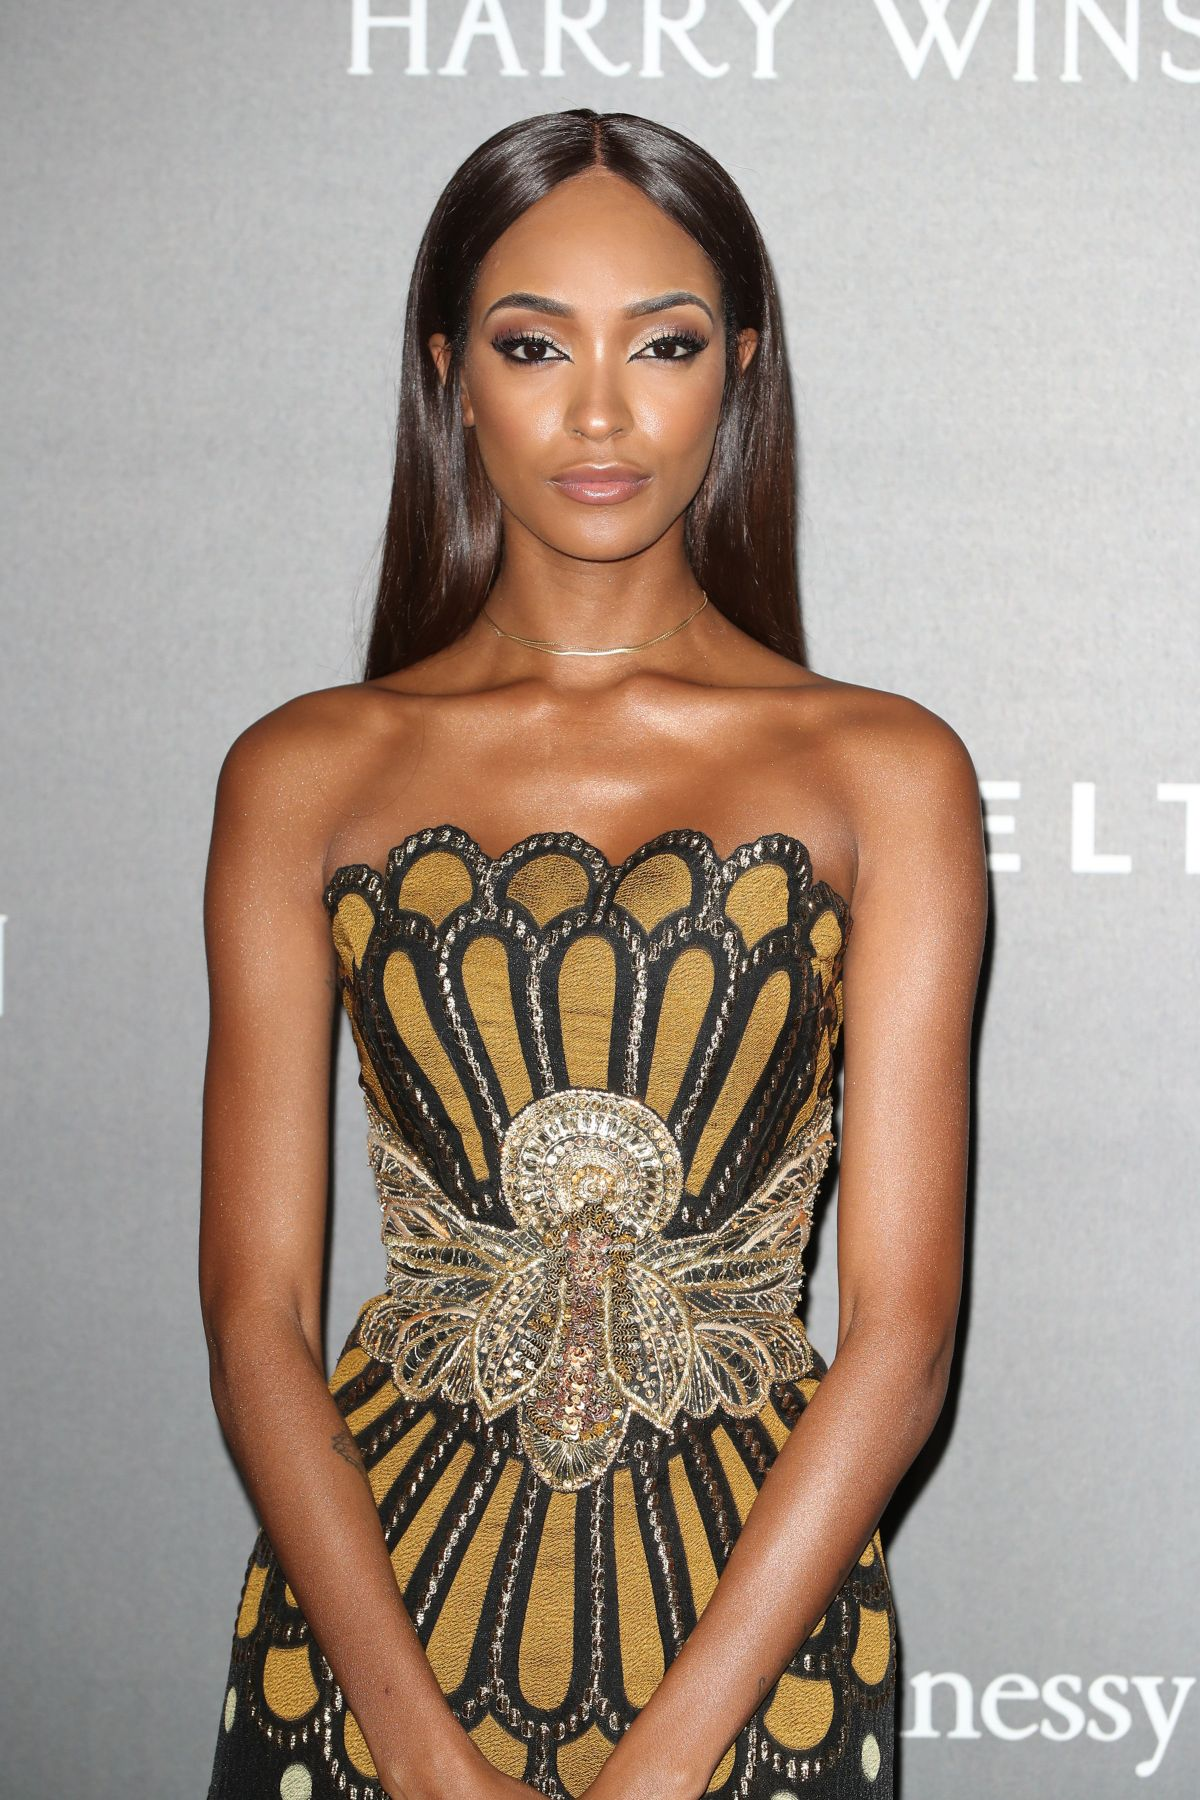 Jourdan Dunn nude (38 foto and video), Sexy, Sideboobs, Instagram, braless 2006